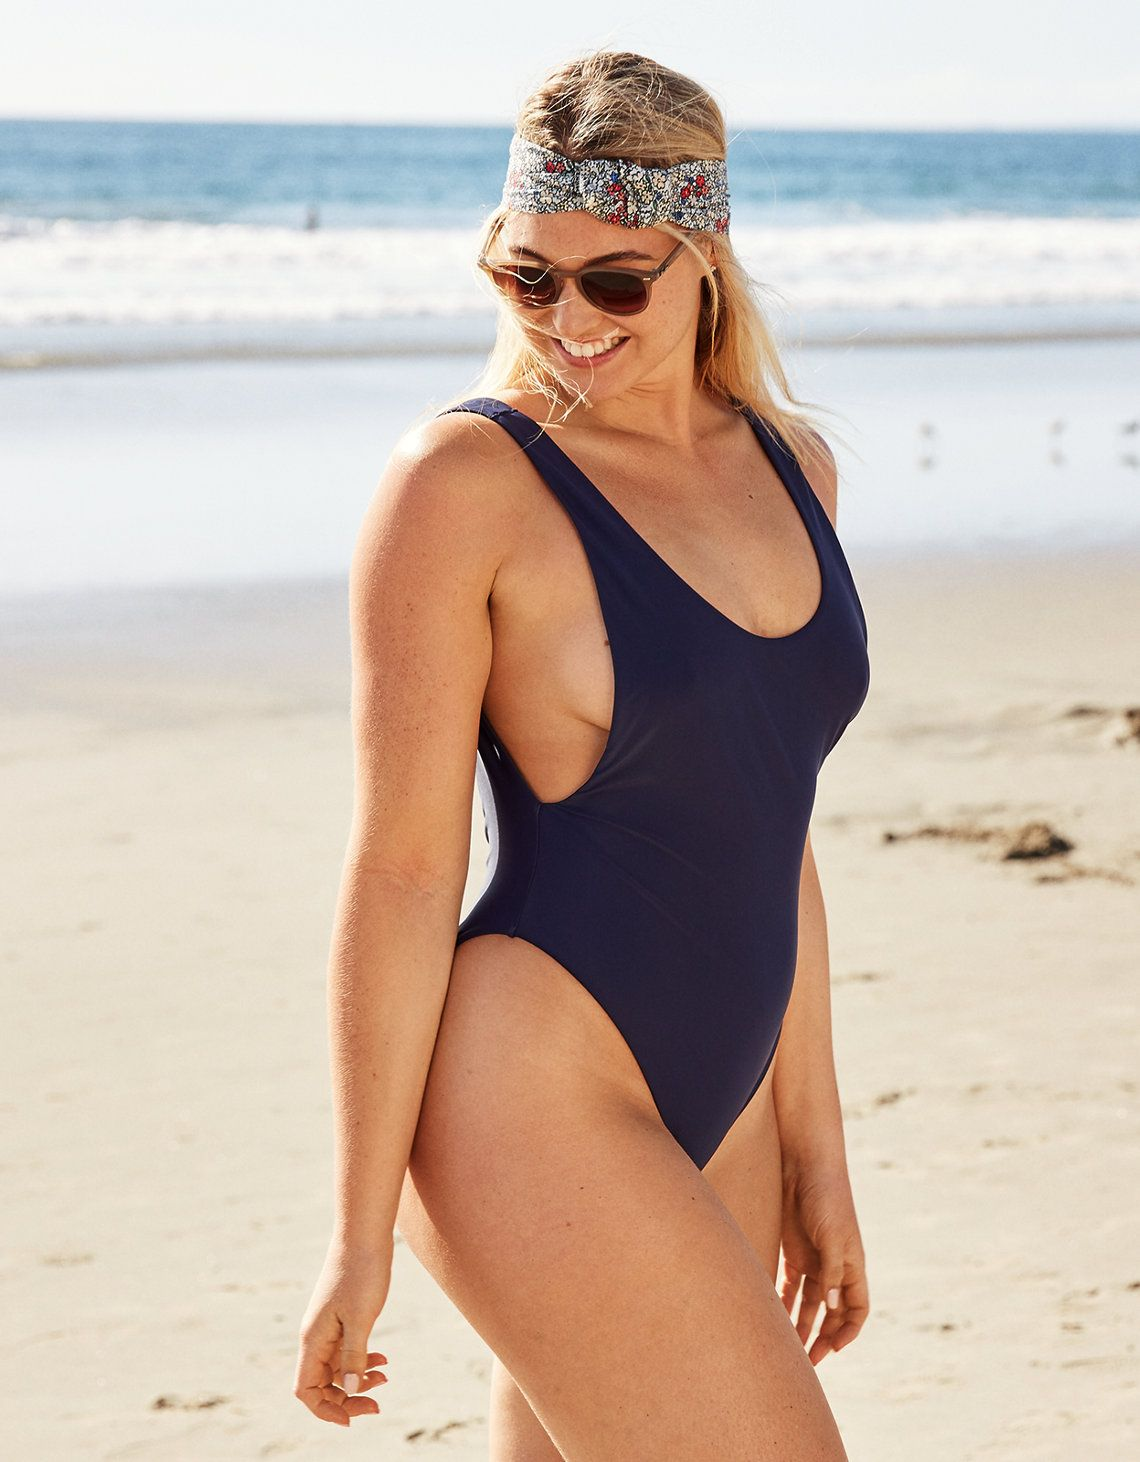 19fb05dc2fa Iskra Lawrence Bikini, Iska Lawrence, Drop Top, Black One Piece